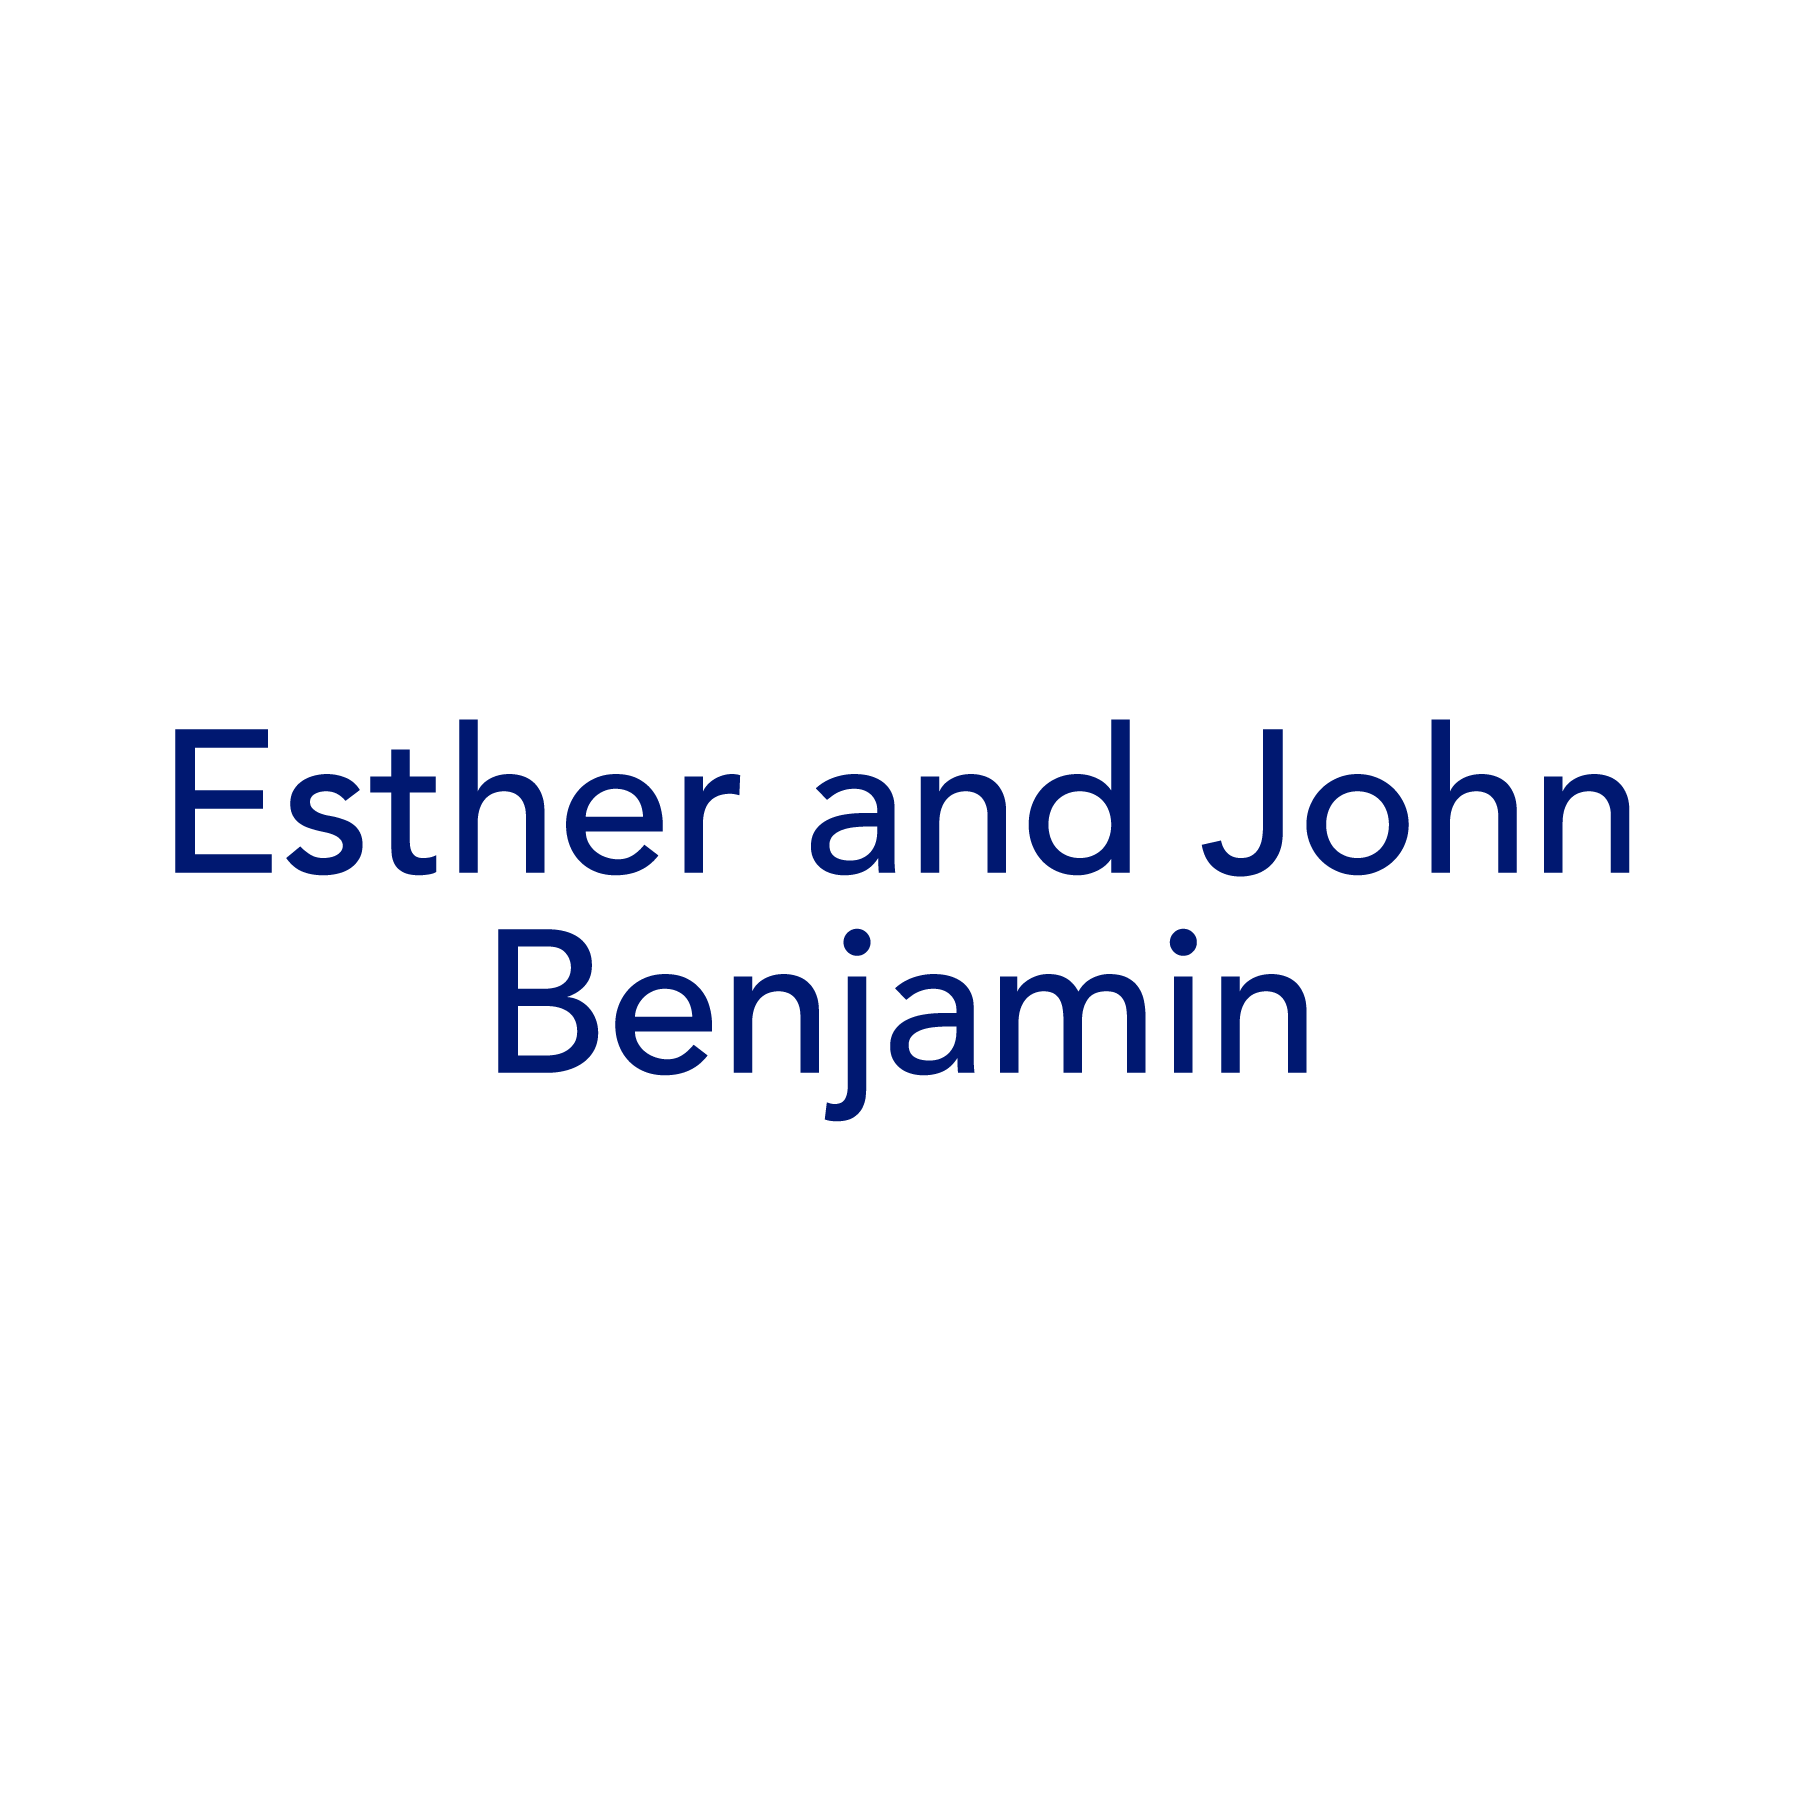 Esther and John Benjamin